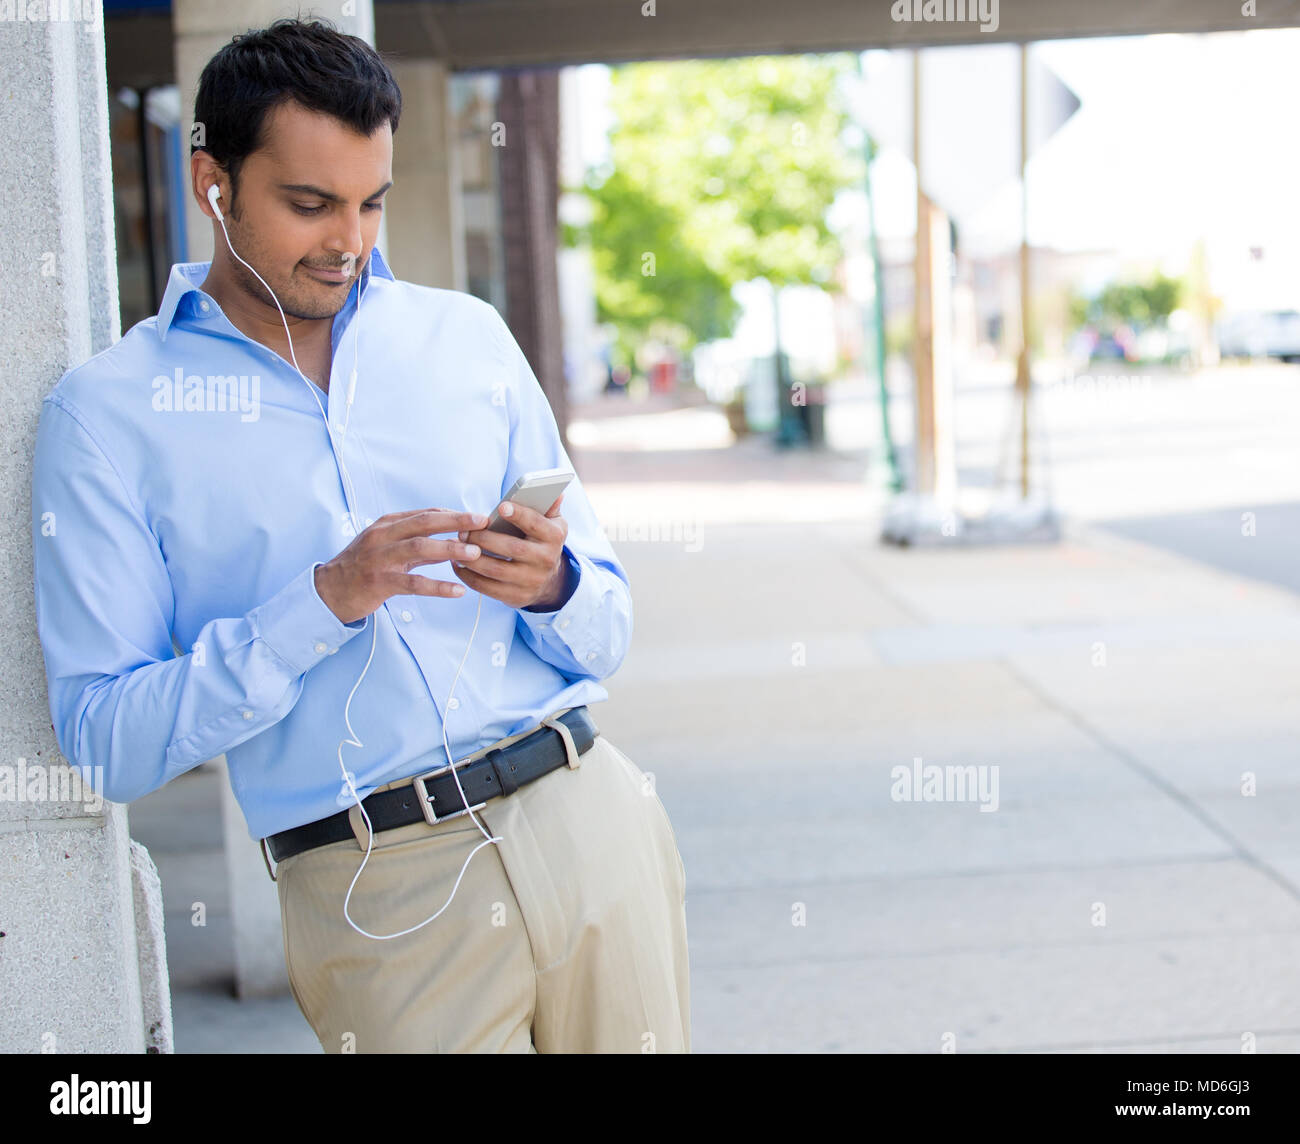 Closeup portrait, young happy business man standing, checking his cellphone, listening to music, isolated on background of a city road with trees on a - Stock Image